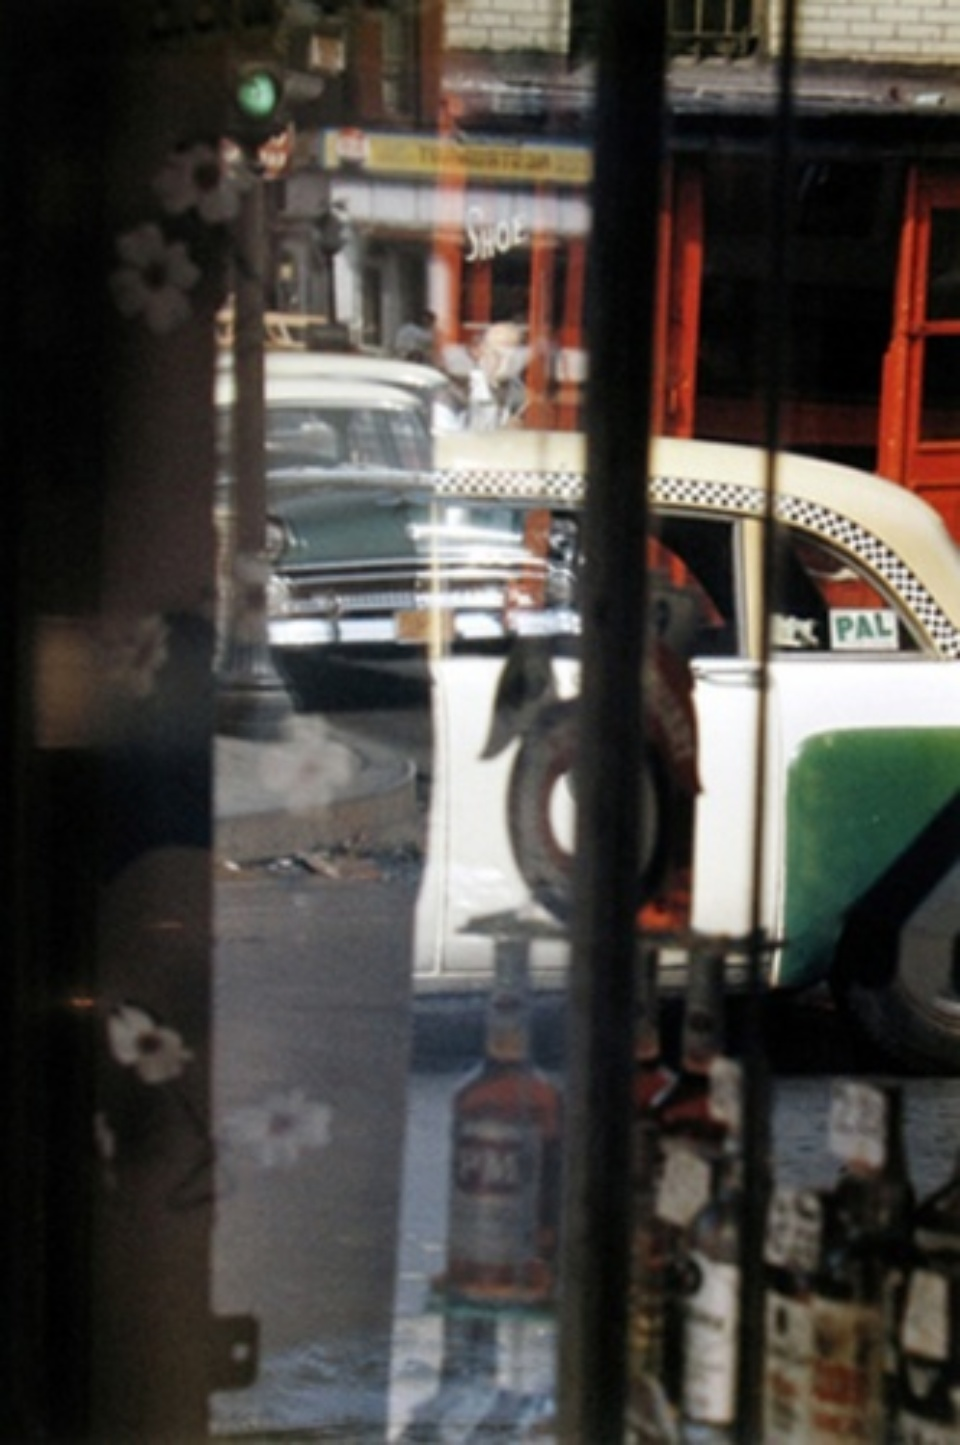 Saul Leiter: Taxi New York, 1956 Chromogenic print, printed later Signed on verso 35 x 28 cm